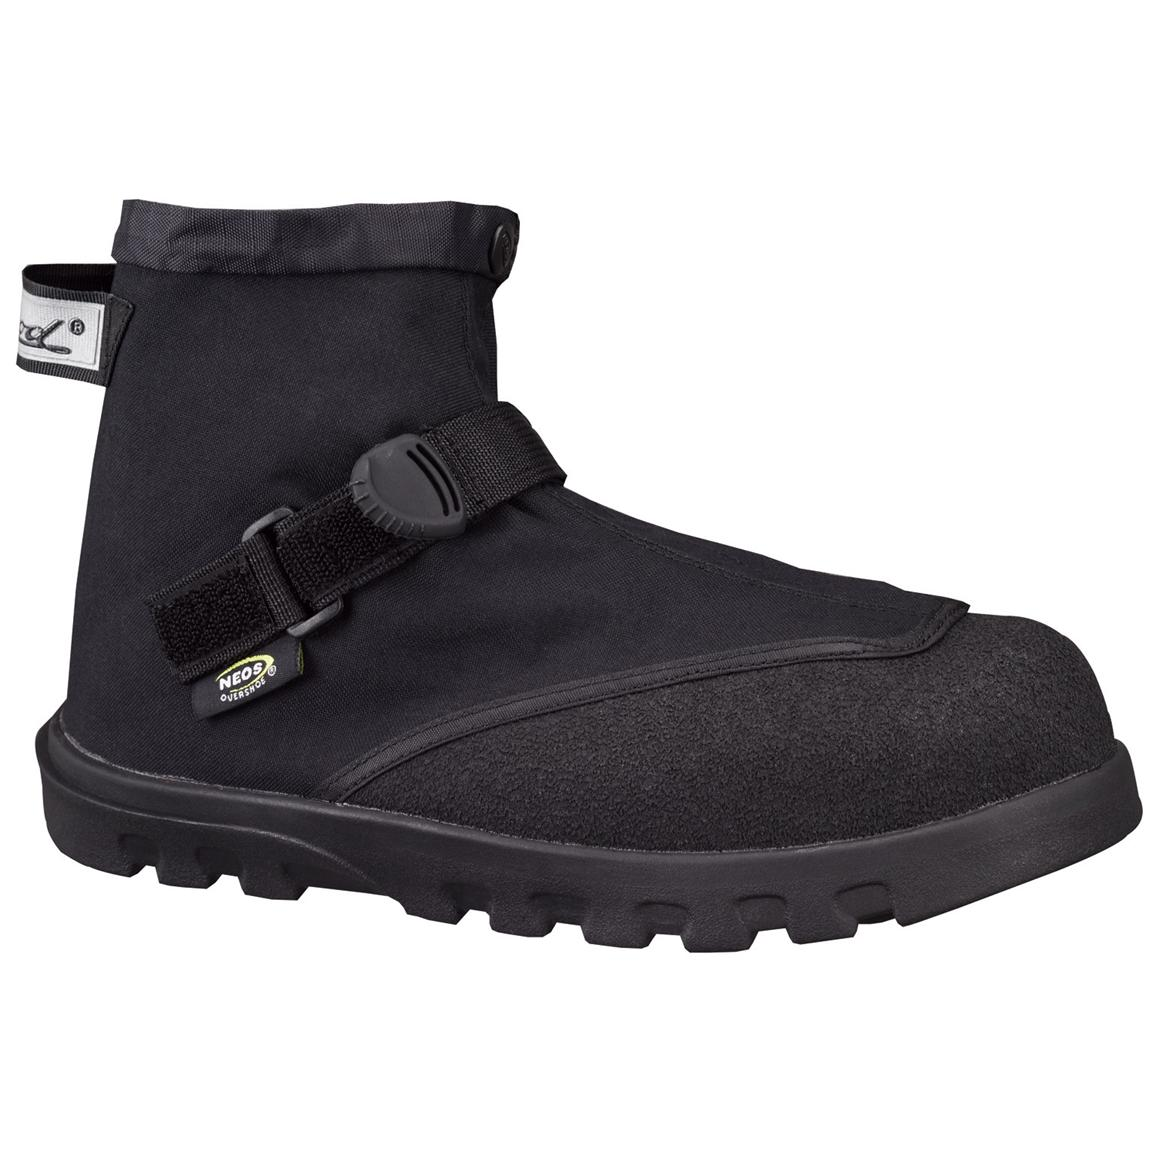 Men's Thorogood® 6 inch Midtown Midheight N.E.O.S.® Waterproof Overshoes